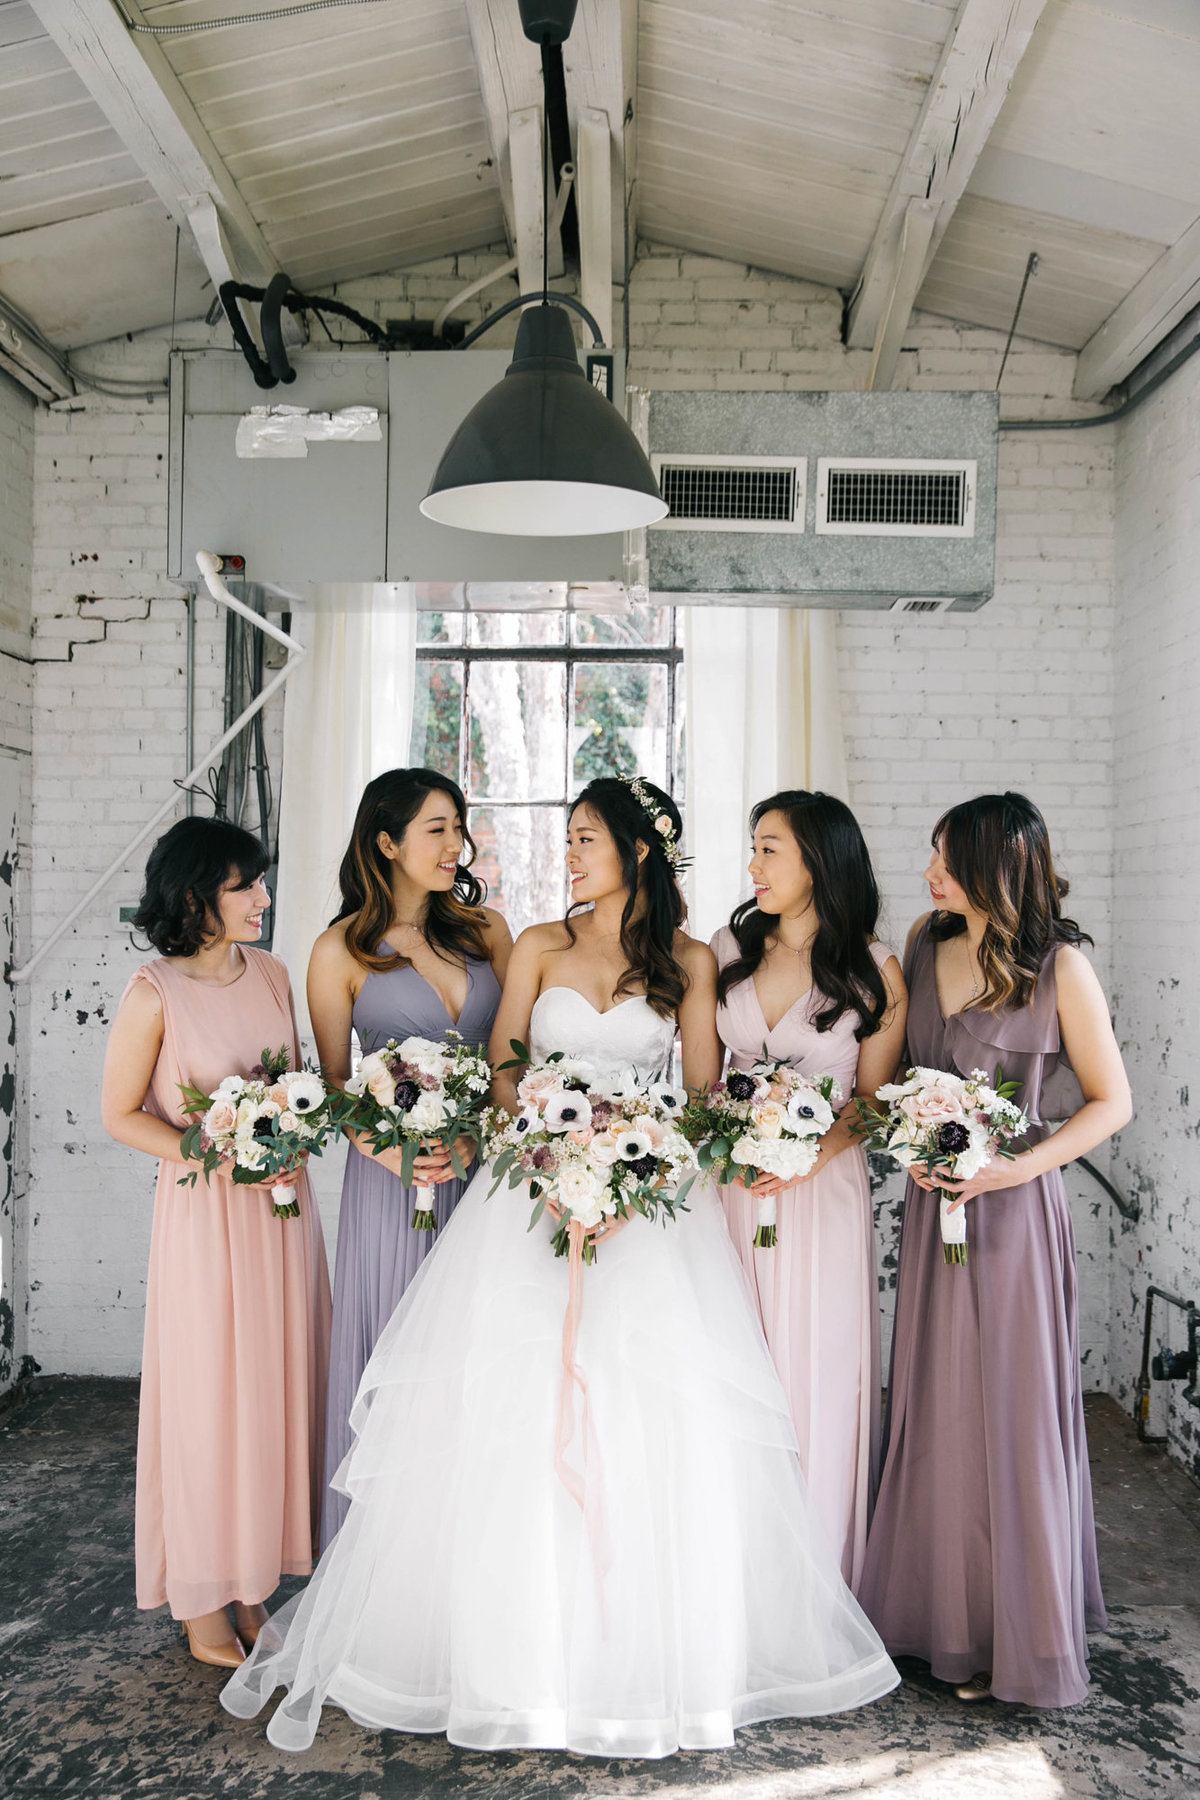 Dallas-Downtown-wedding-at-Hickory-Street-Annex-by-Julia-Sharapova-Photographer-75